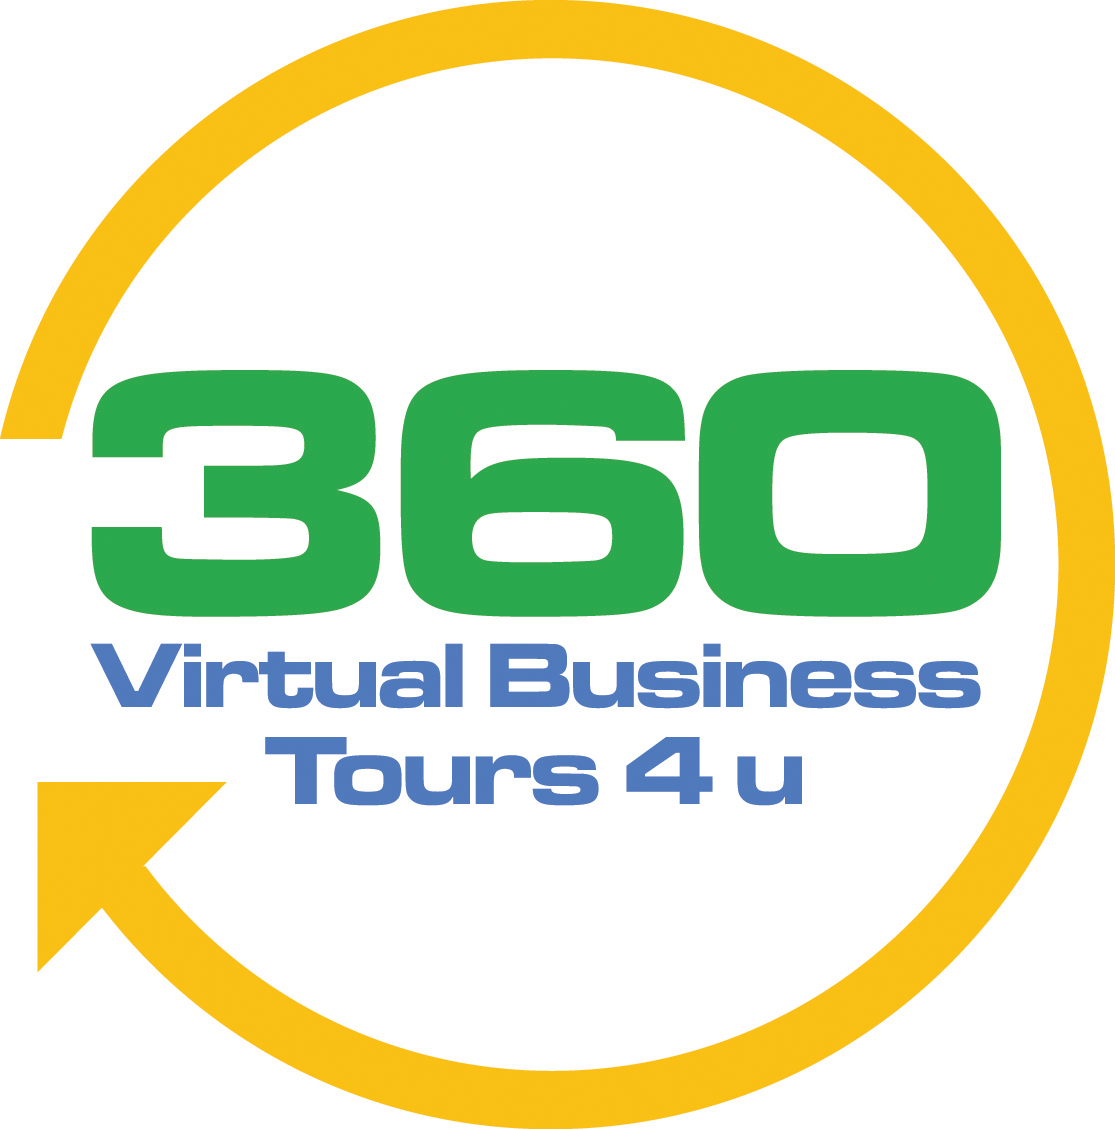 360 Virtual Business Tours 4 U